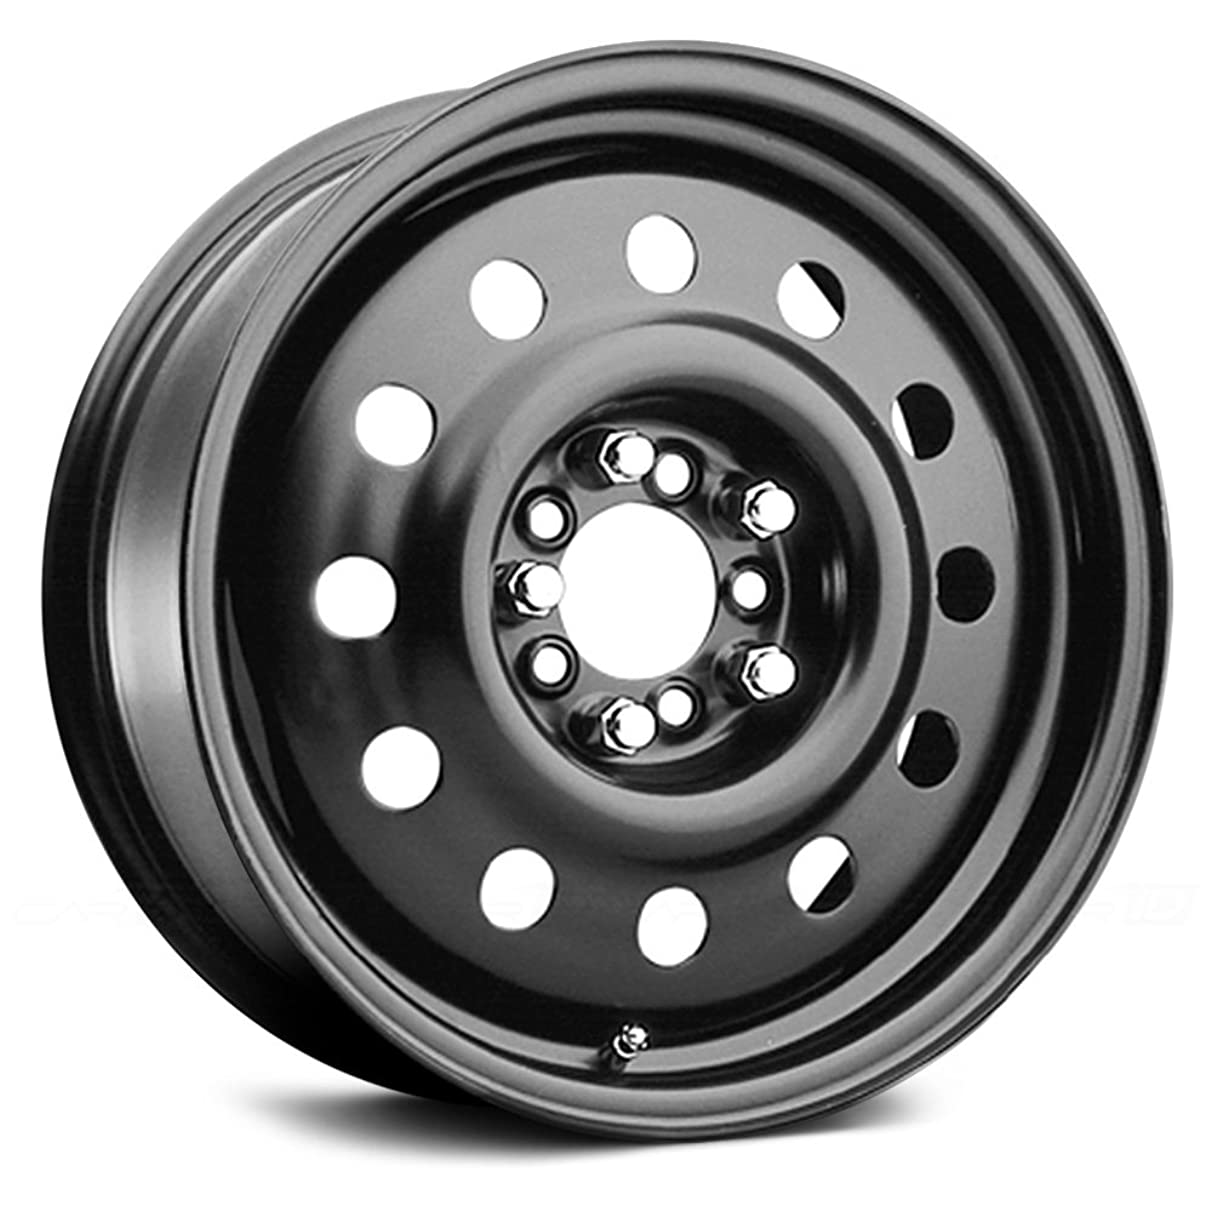 Pacer Black Modular 17 Black Wheel / Rim 5x110 & 5x120 with a 38mm Offset and a 72 Hub Bore. Partnumber 83B-7713